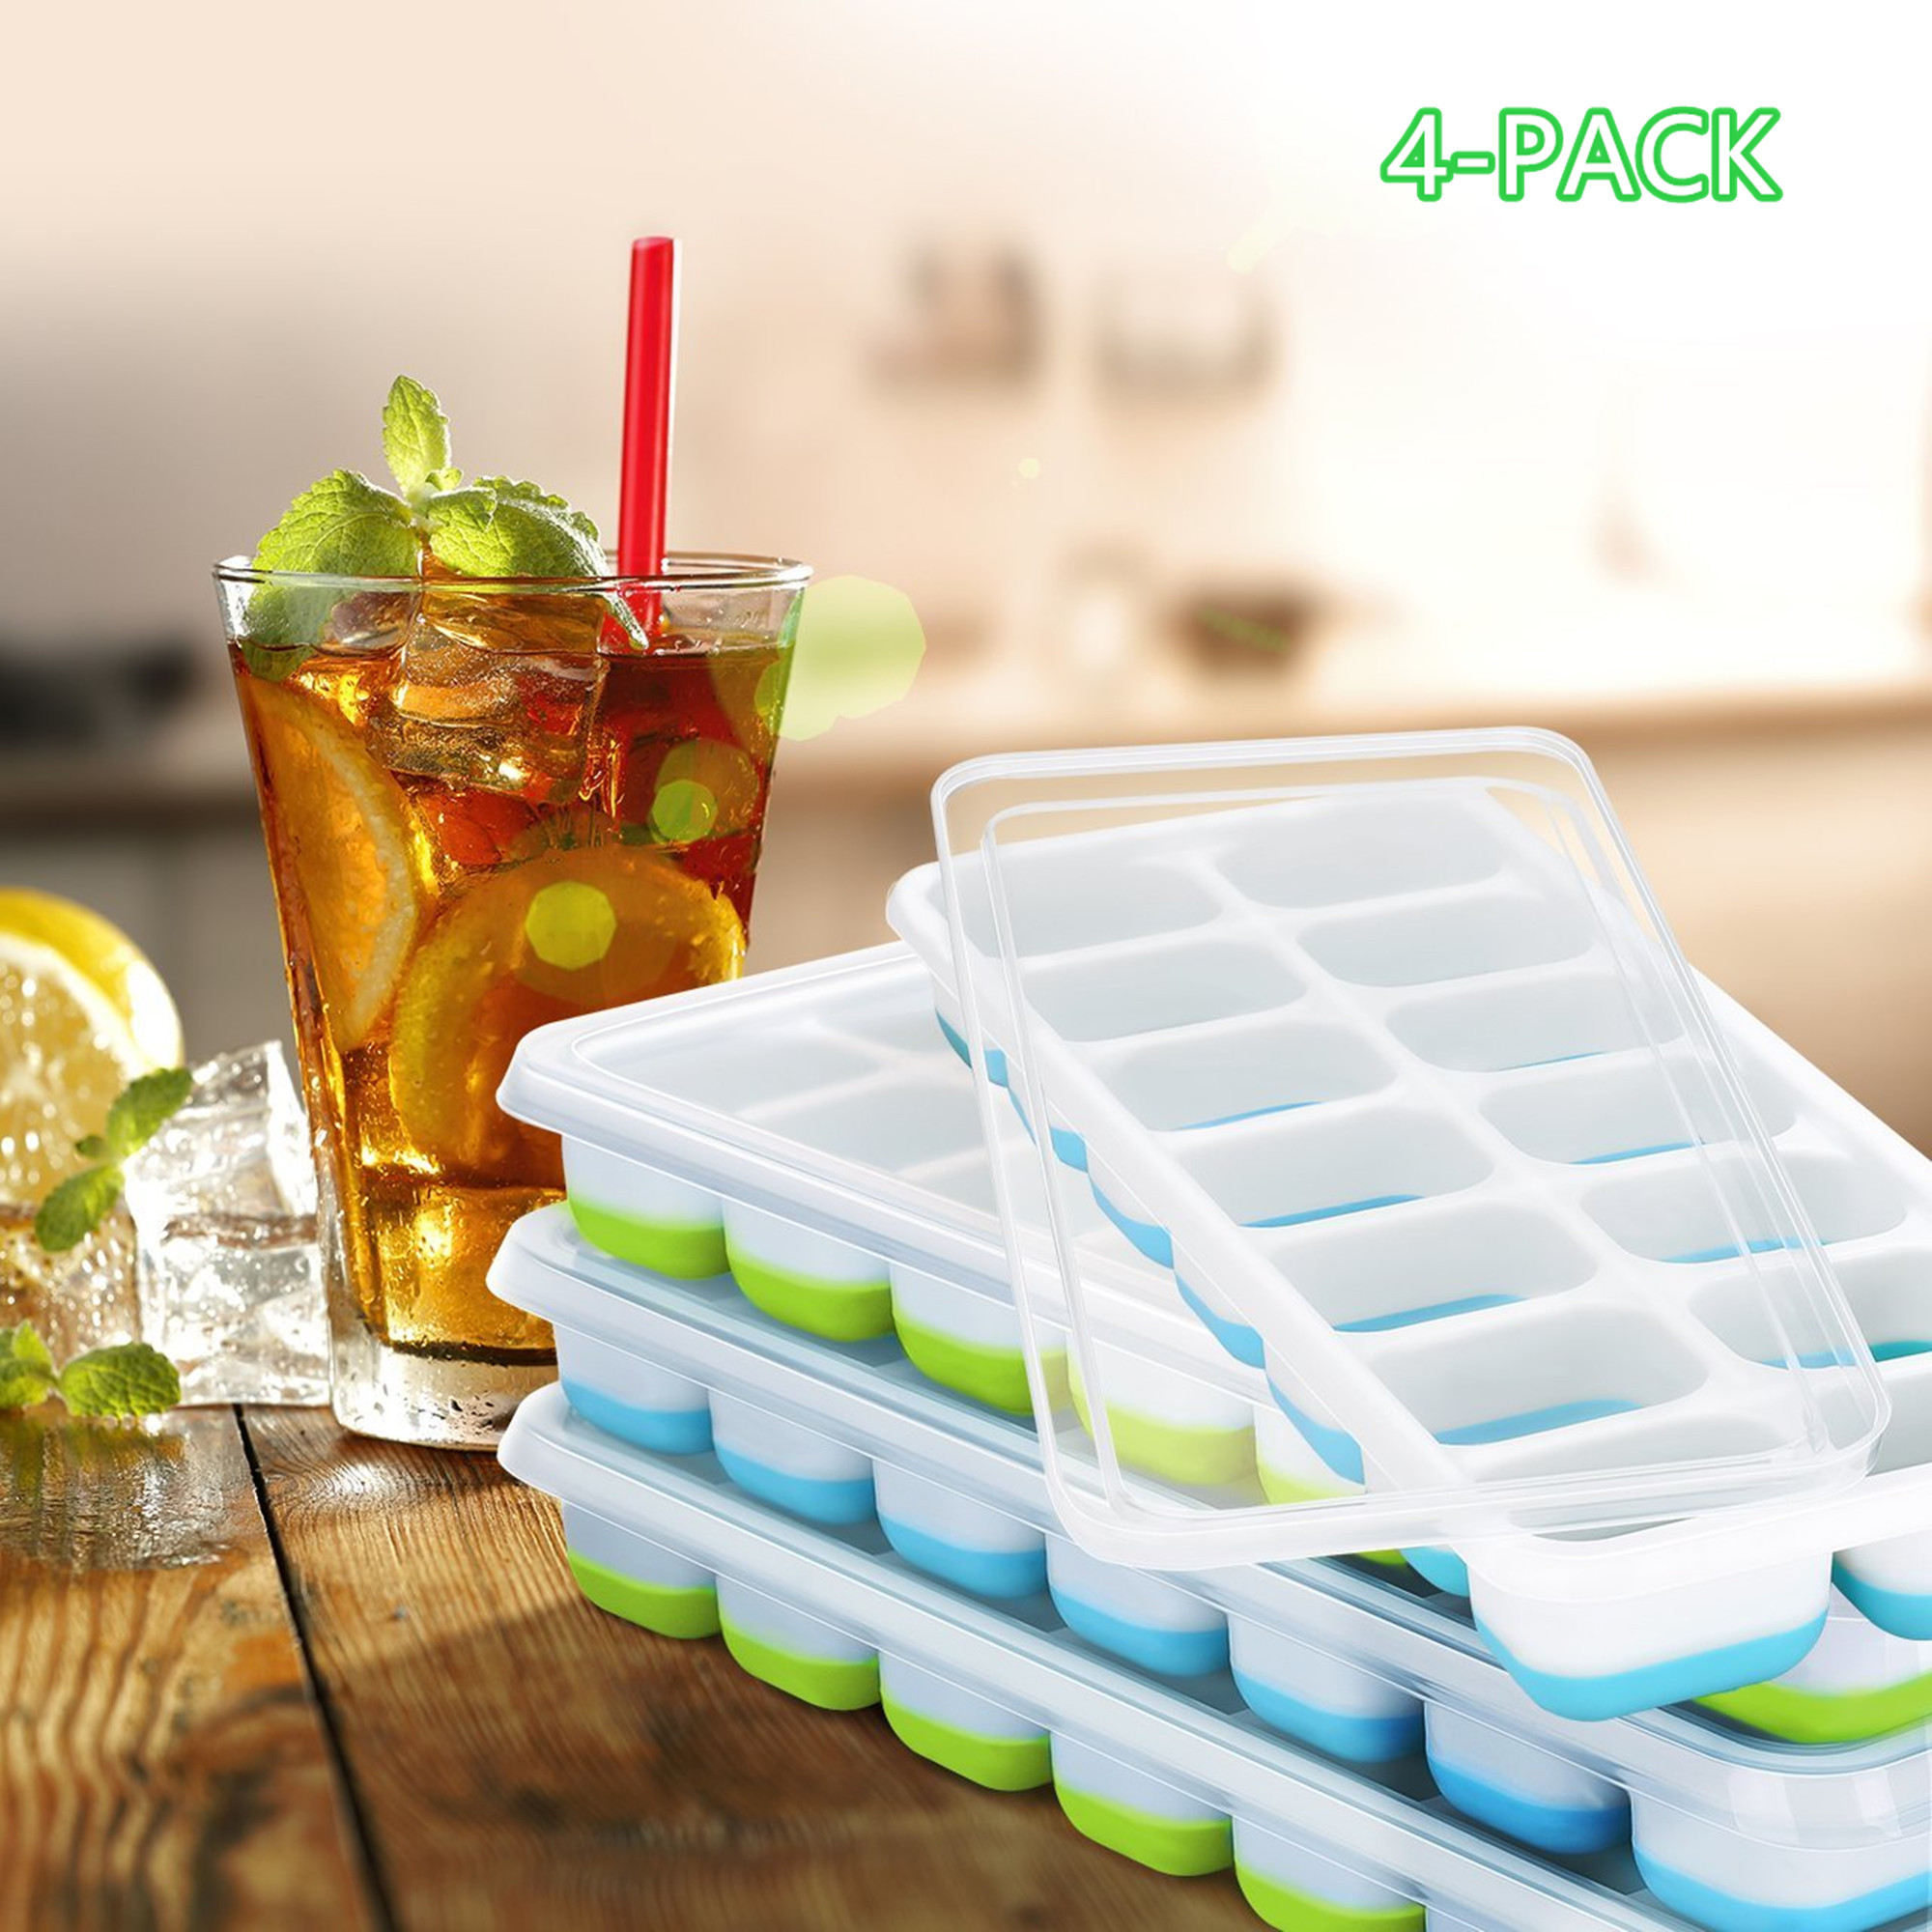 Ice Cube Trays 4 Pack, Easy-Release Silicone and Flexible 14-Ice Trays with Spill-Resistant Removable Lid, LFGB Certified & BPA Free, Stackable Durable and Dishwasher Safe - Blue & Green